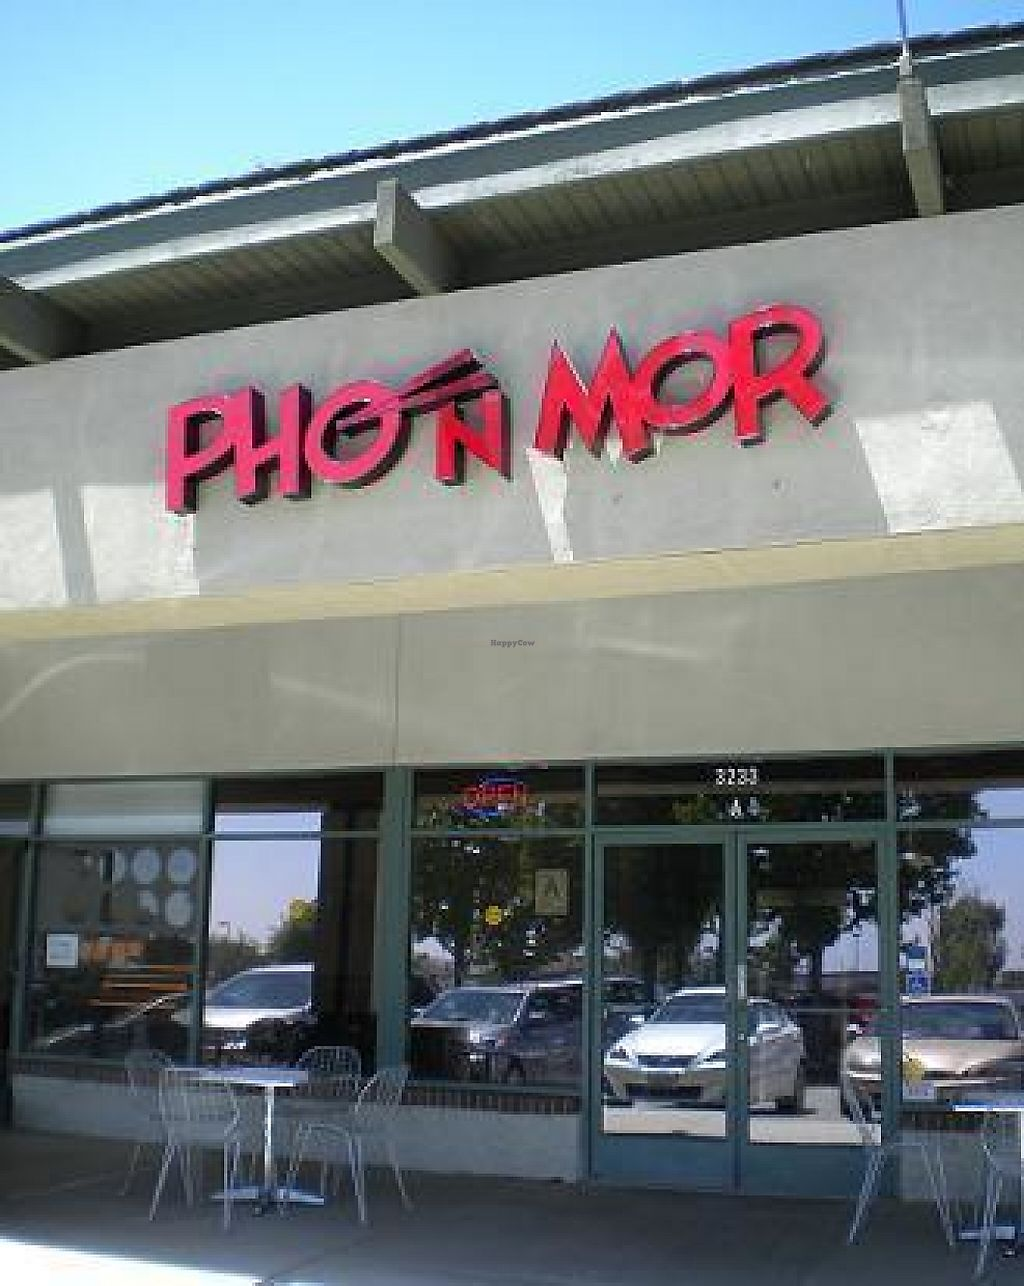 """Photo of Pho Chino Hills  by <a href=""""/members/profile/phonmor"""">phonmor</a> <br/>Pho n mor <br/> May 16, 2017  - <a href='/contact/abuse/image/65908/259184'>Report</a>"""